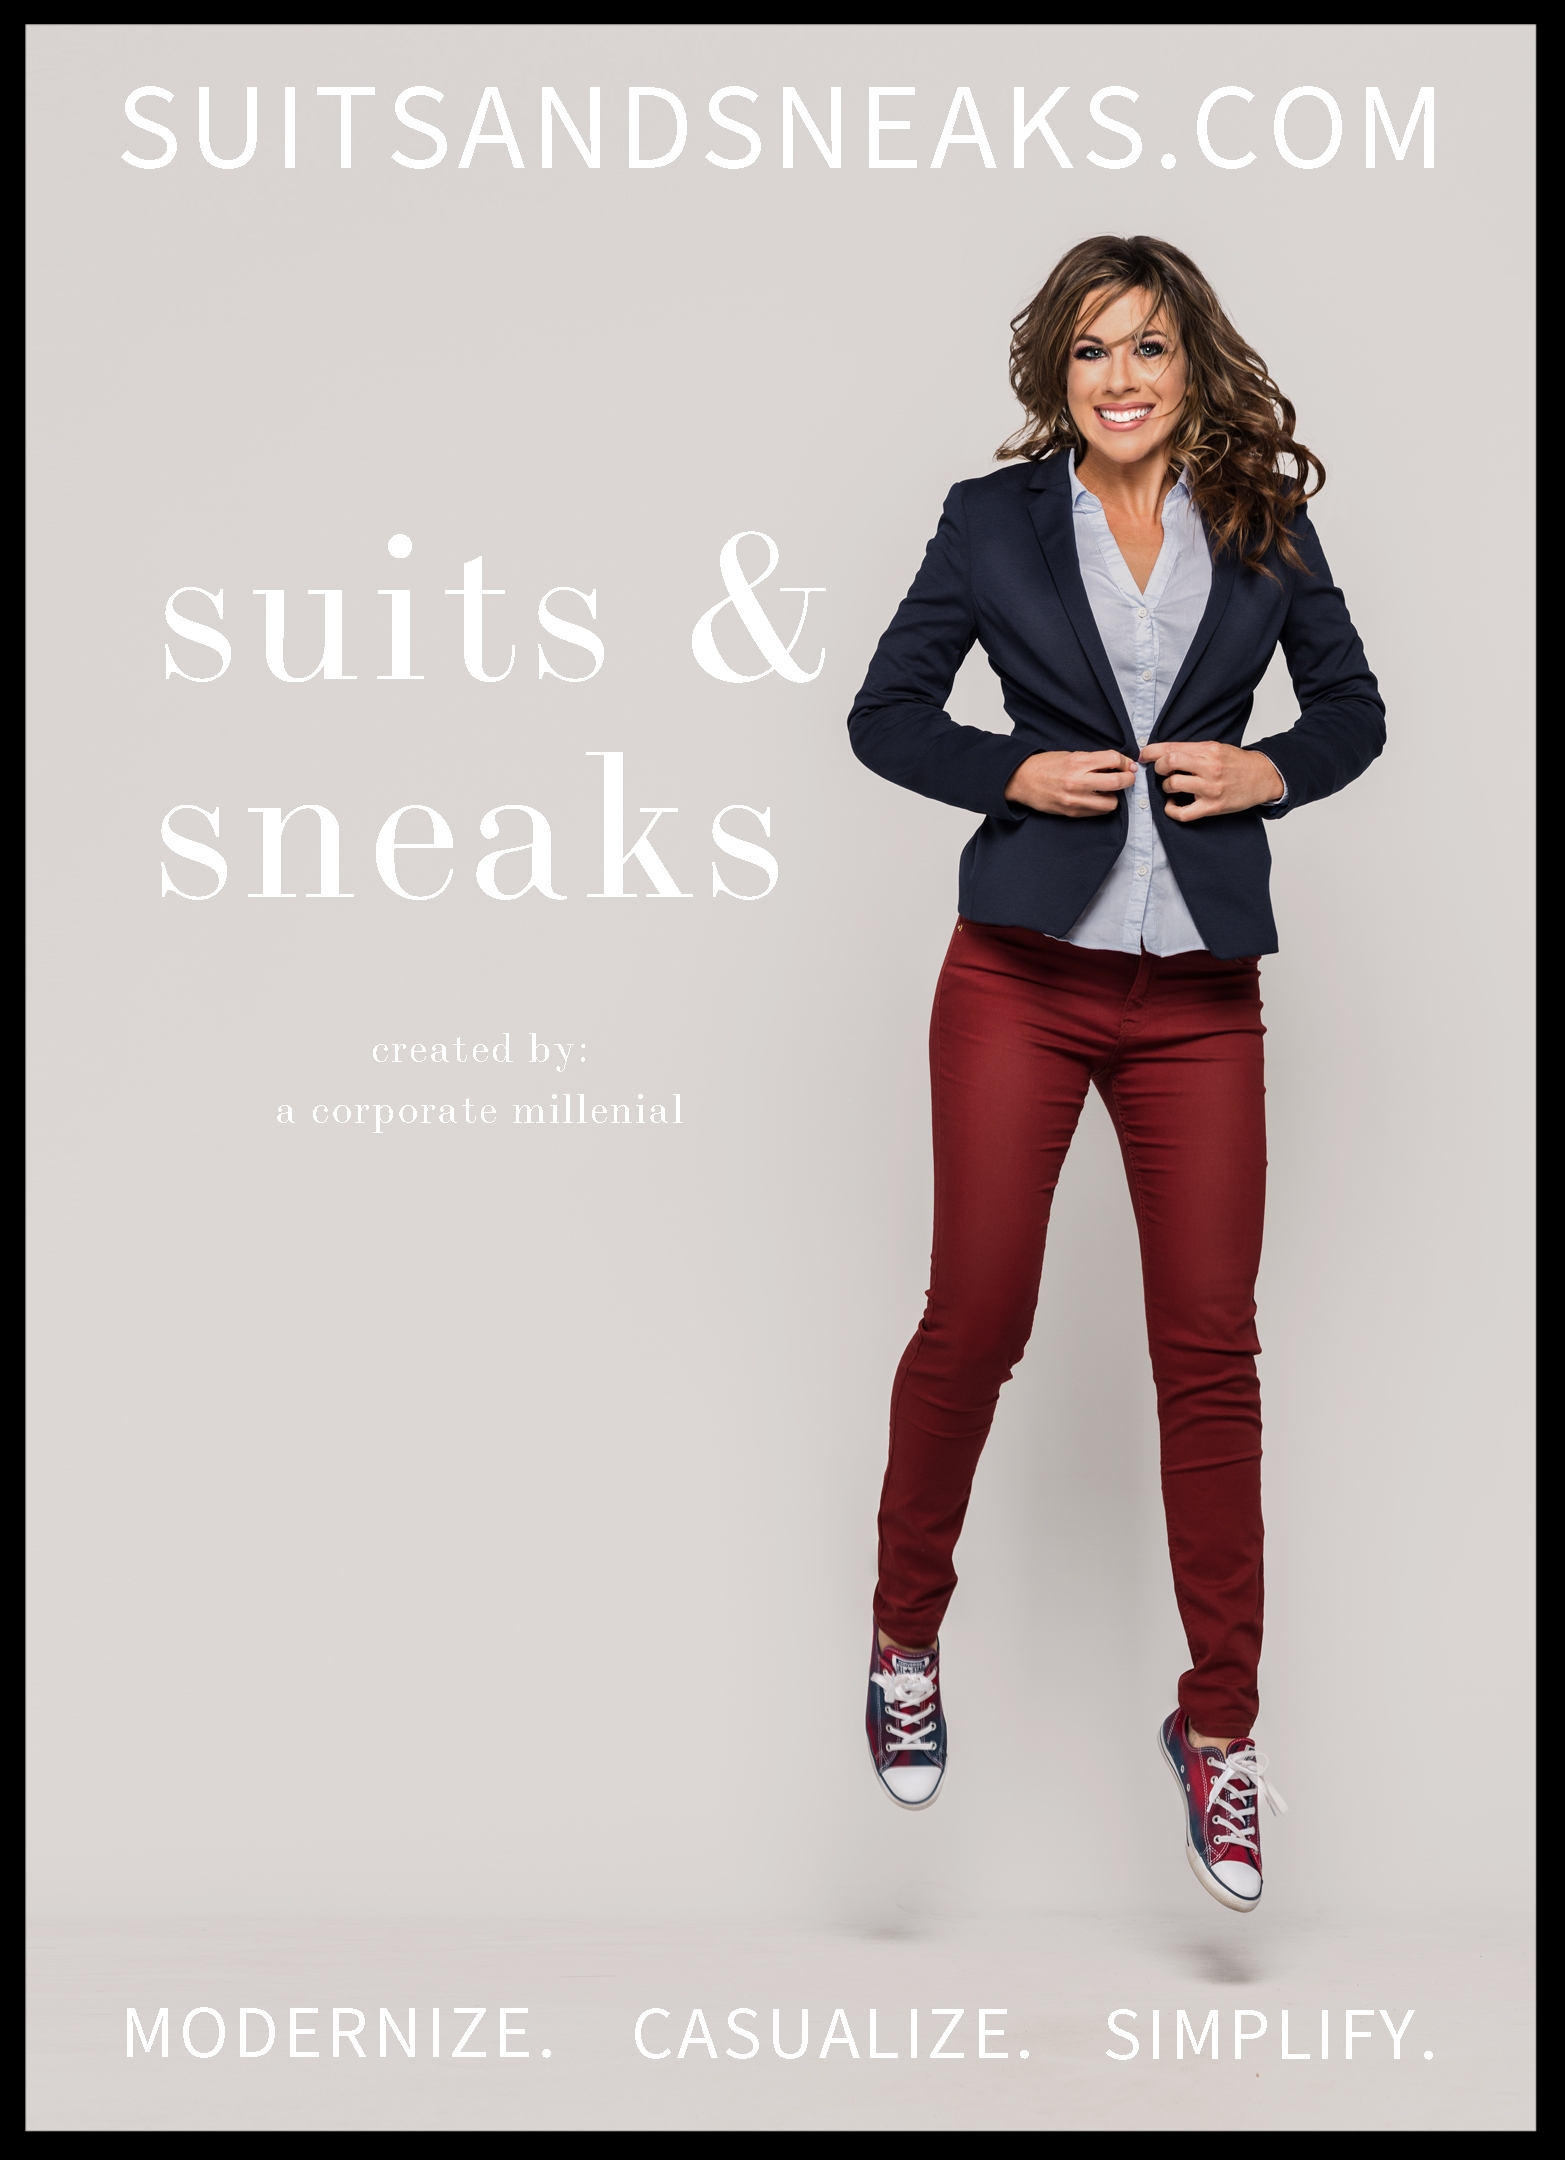 Suits & Sneaks Advertisement - Polished casual fashion